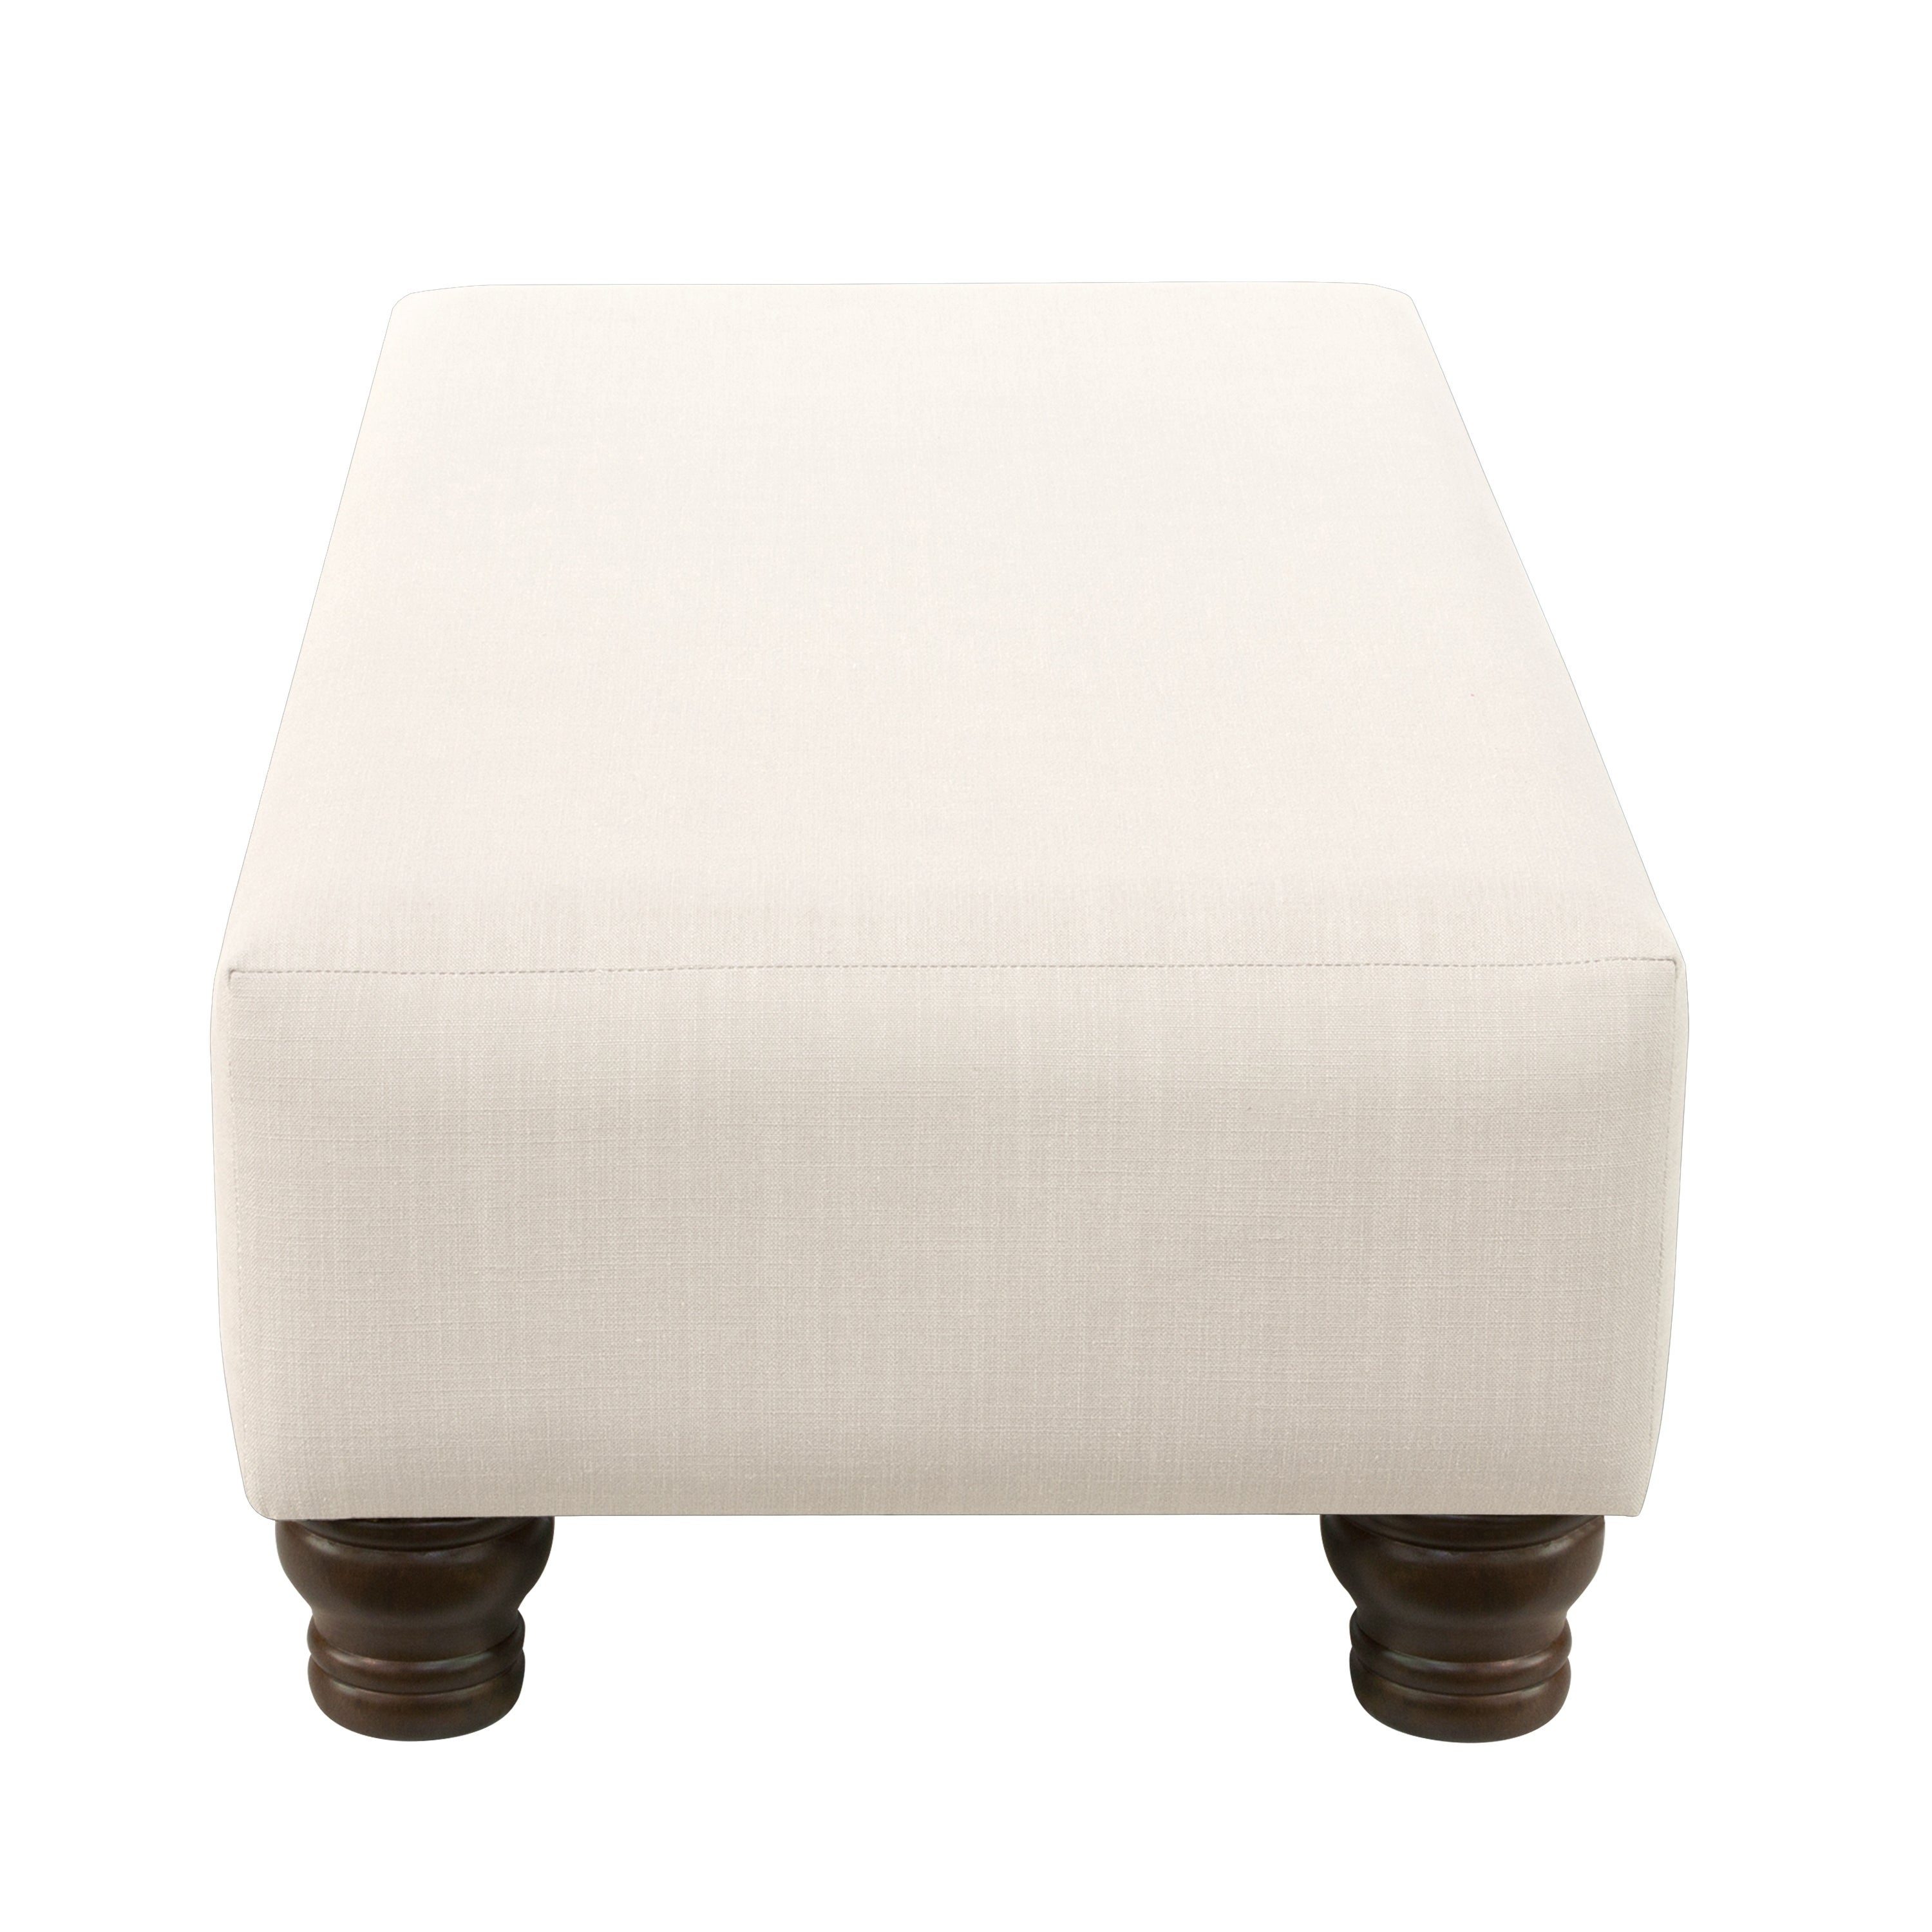 Skyline Furniture Ottoman In Linen   Free Shipping Today   Overstock    23216239